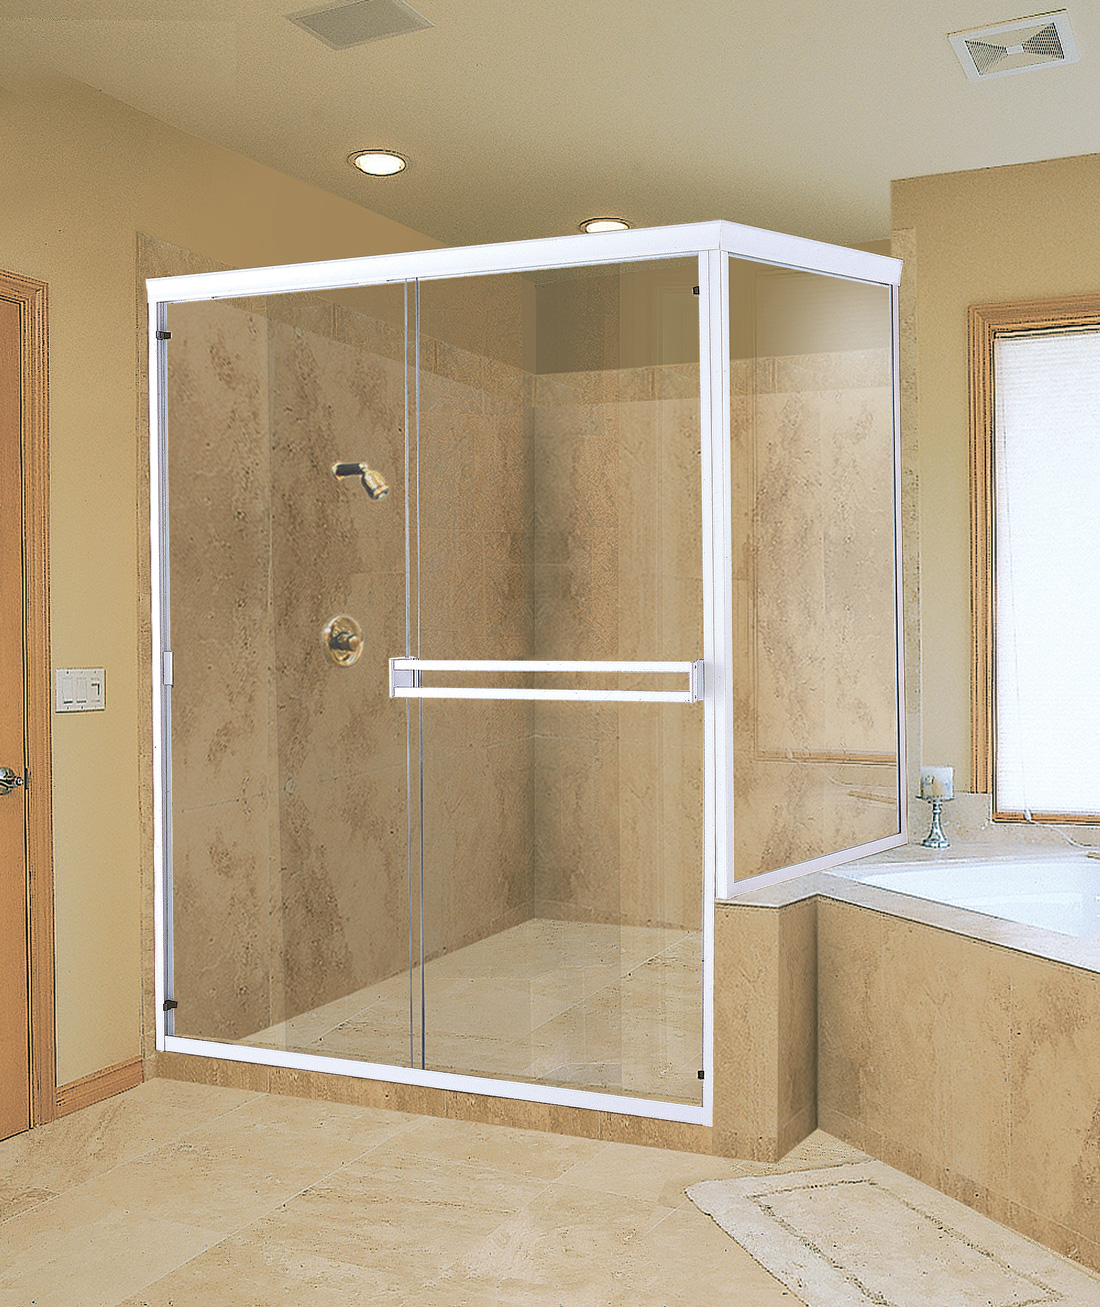 Frameless glass storefront door - Commercial Storefronts Monas Glass Frameless Shower Doors